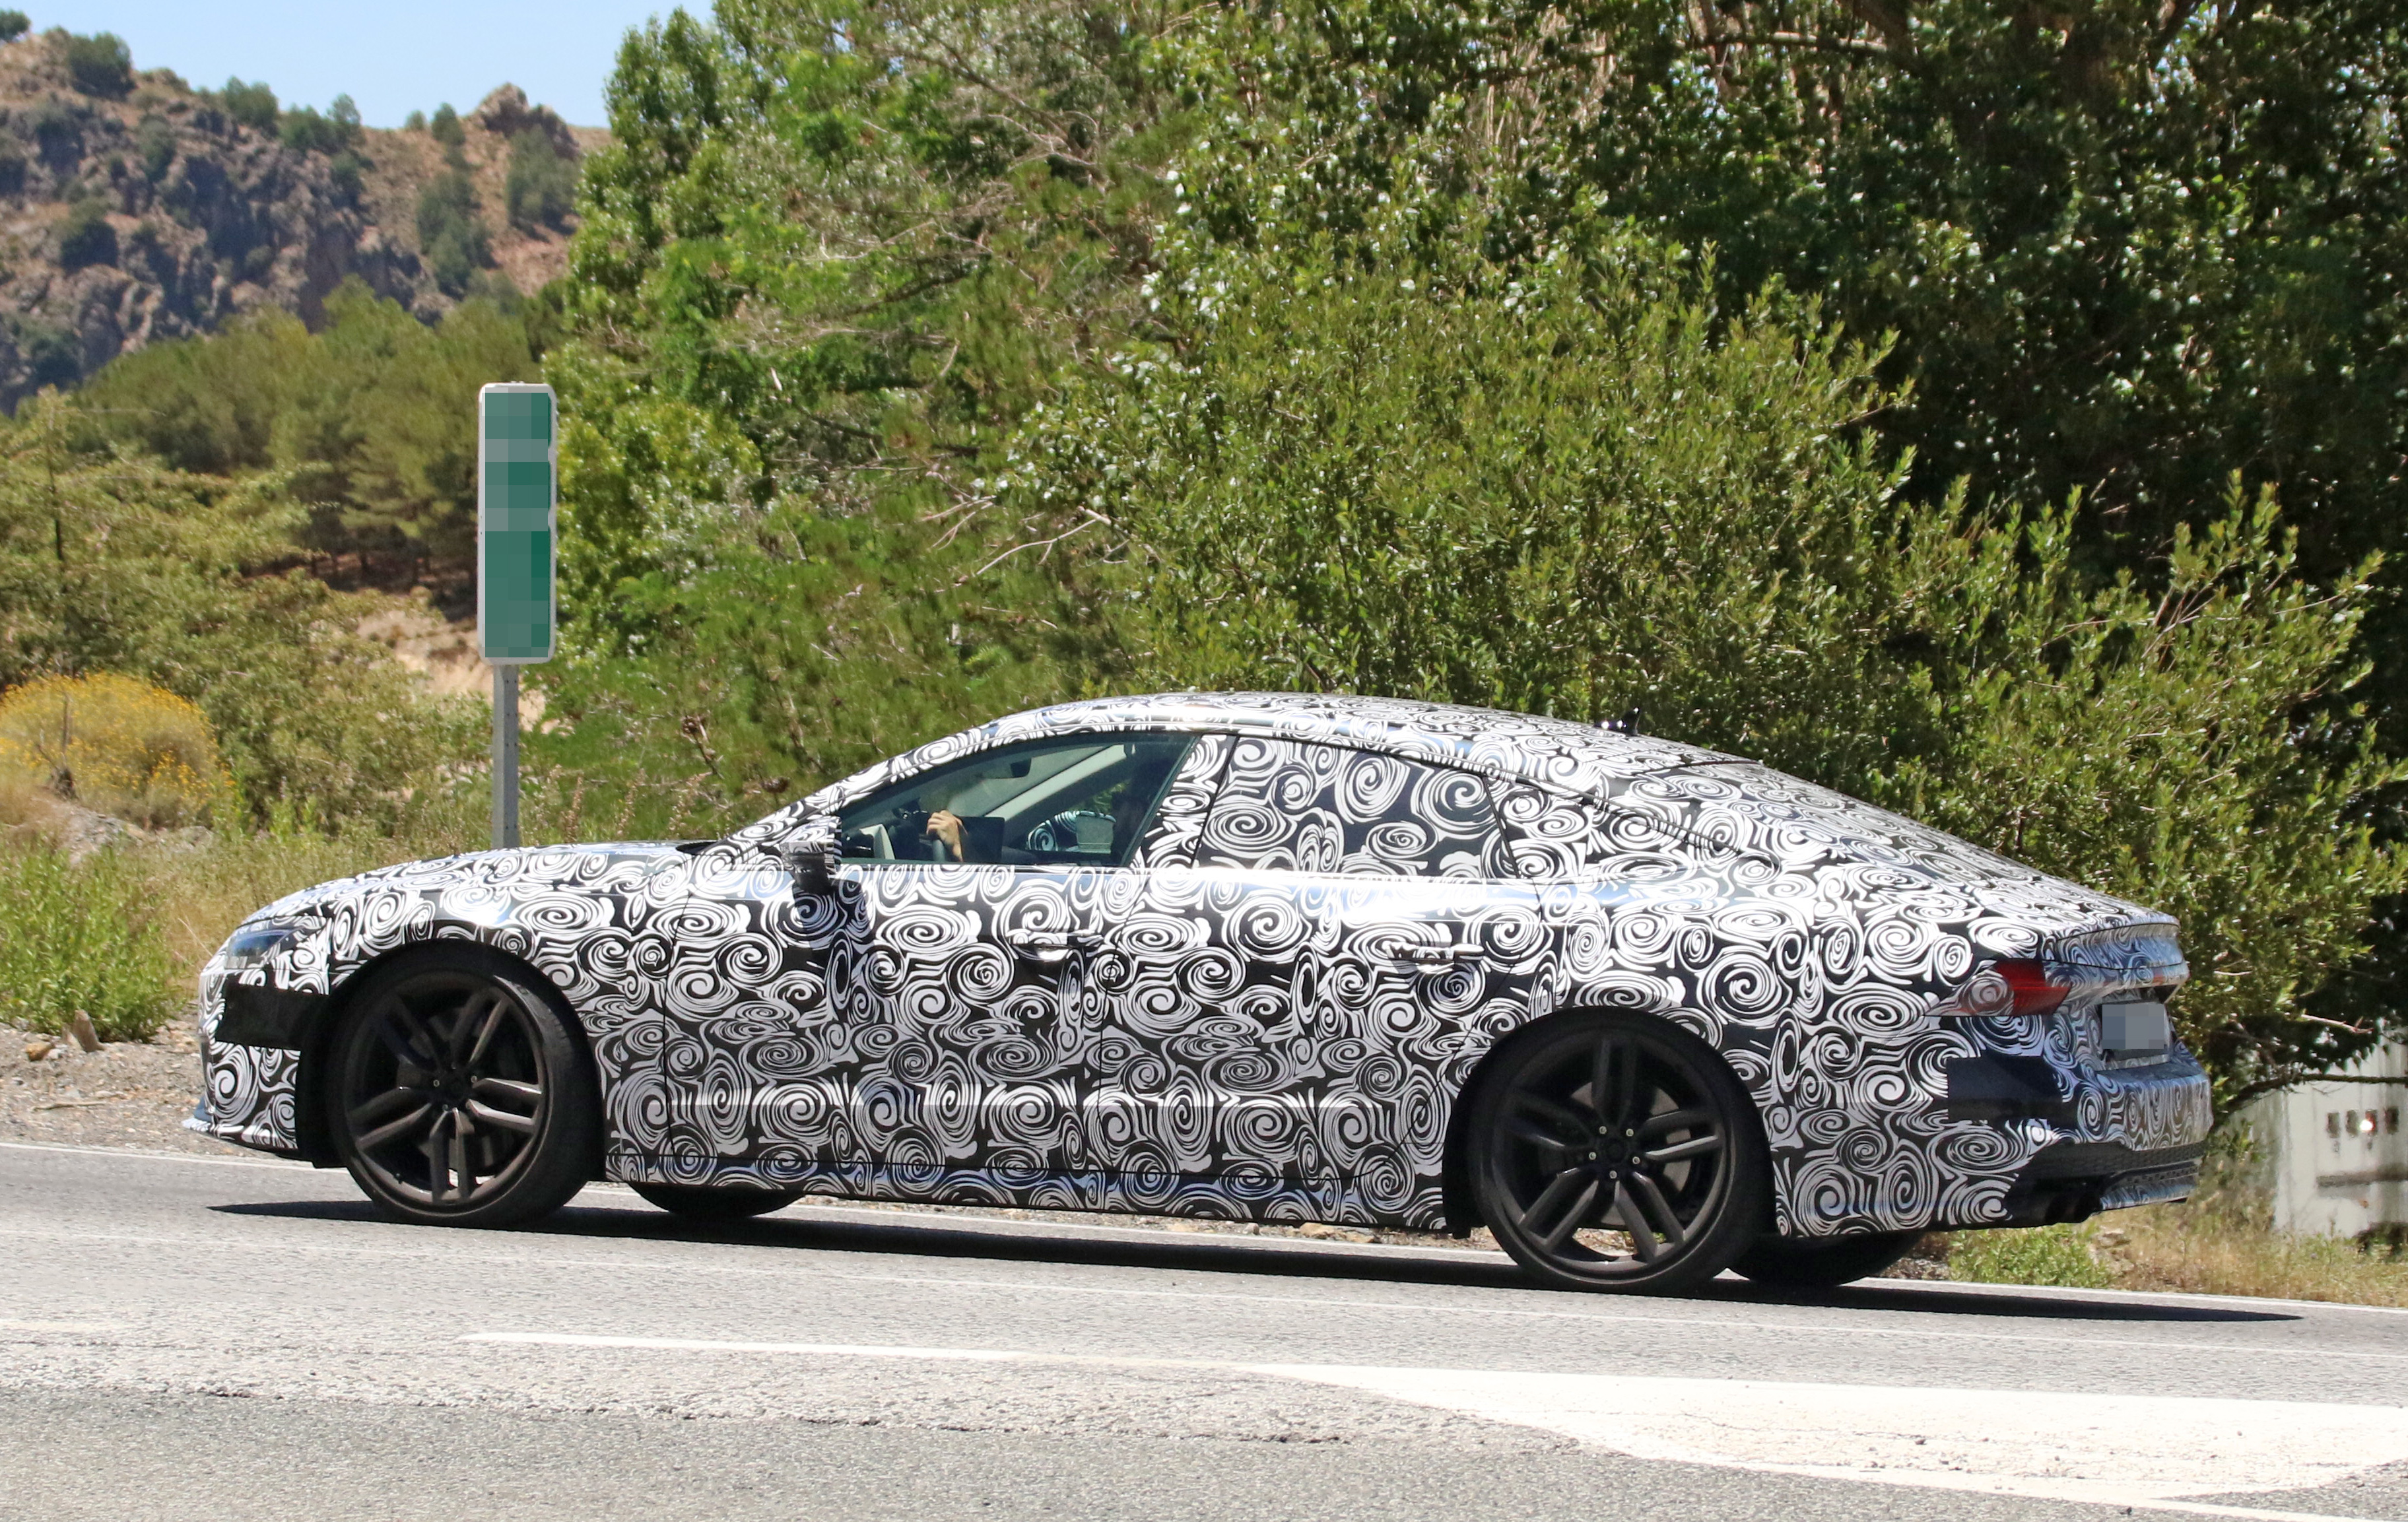 2018 Audi S7 Spied Testing In The Heat Of Southern Europe